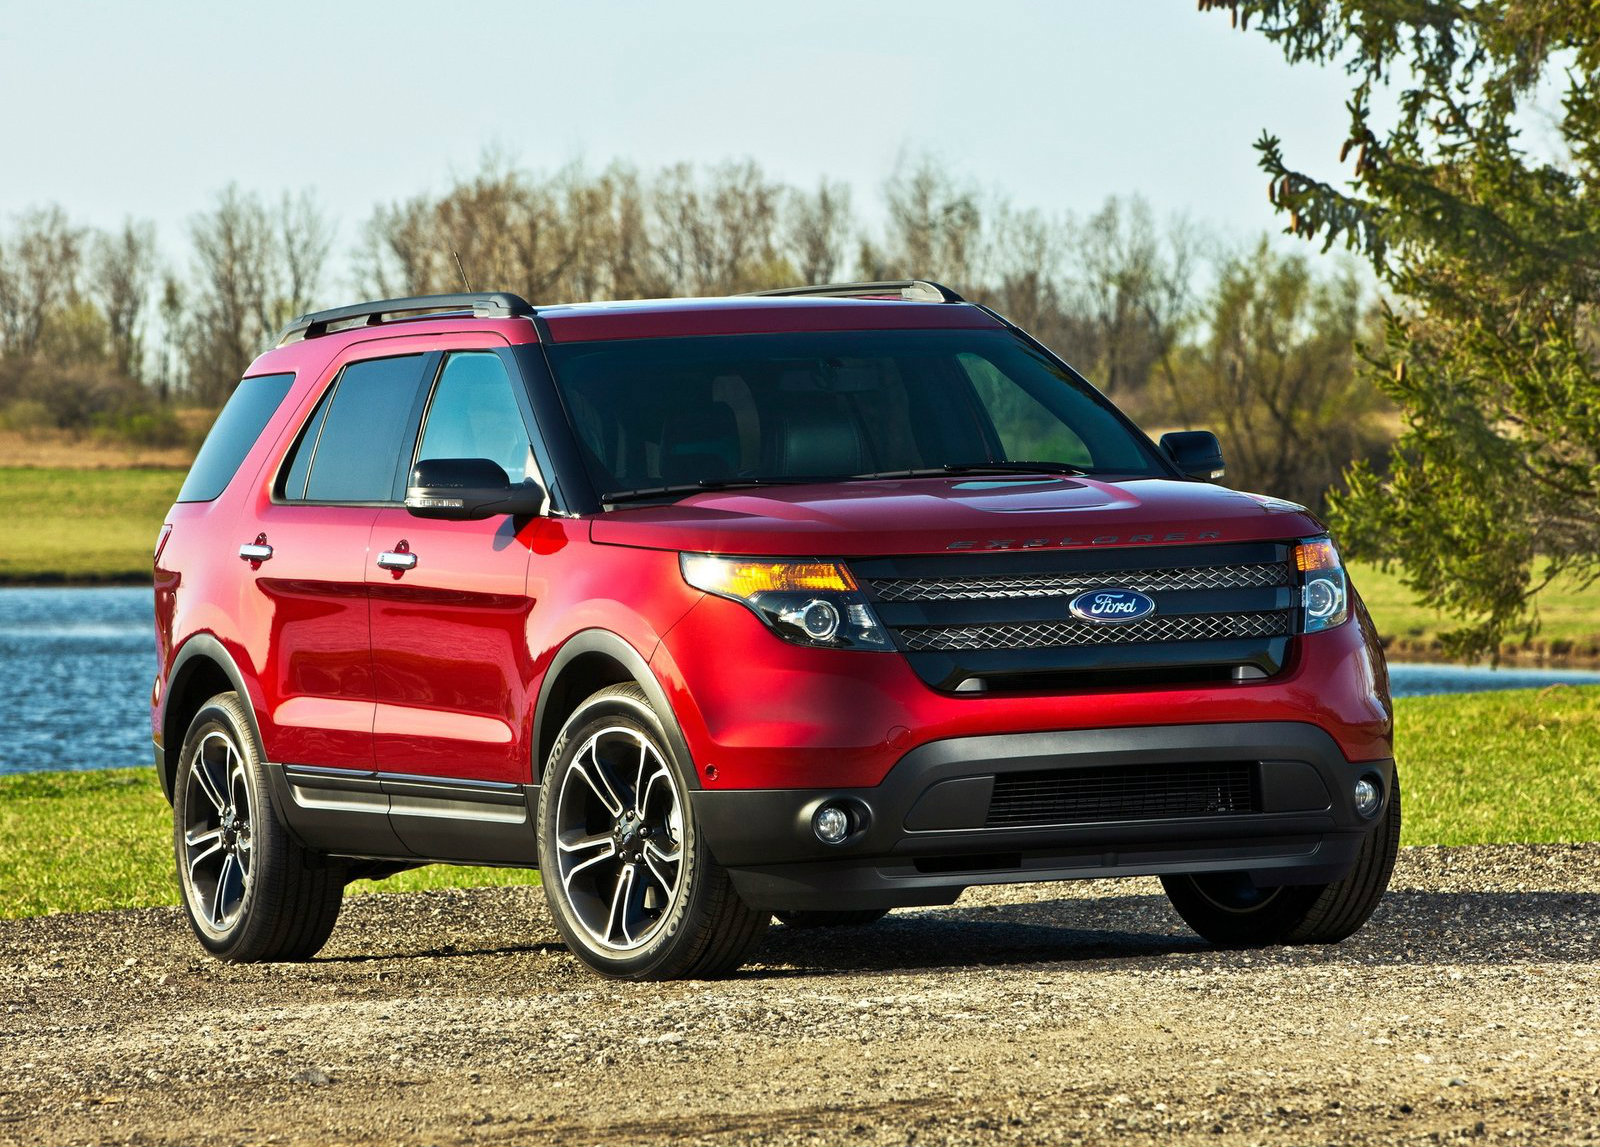 Ford Explorer Exhaust Leak >> Ford Explorer Investigated Over Exhaust Leak Autoevolution